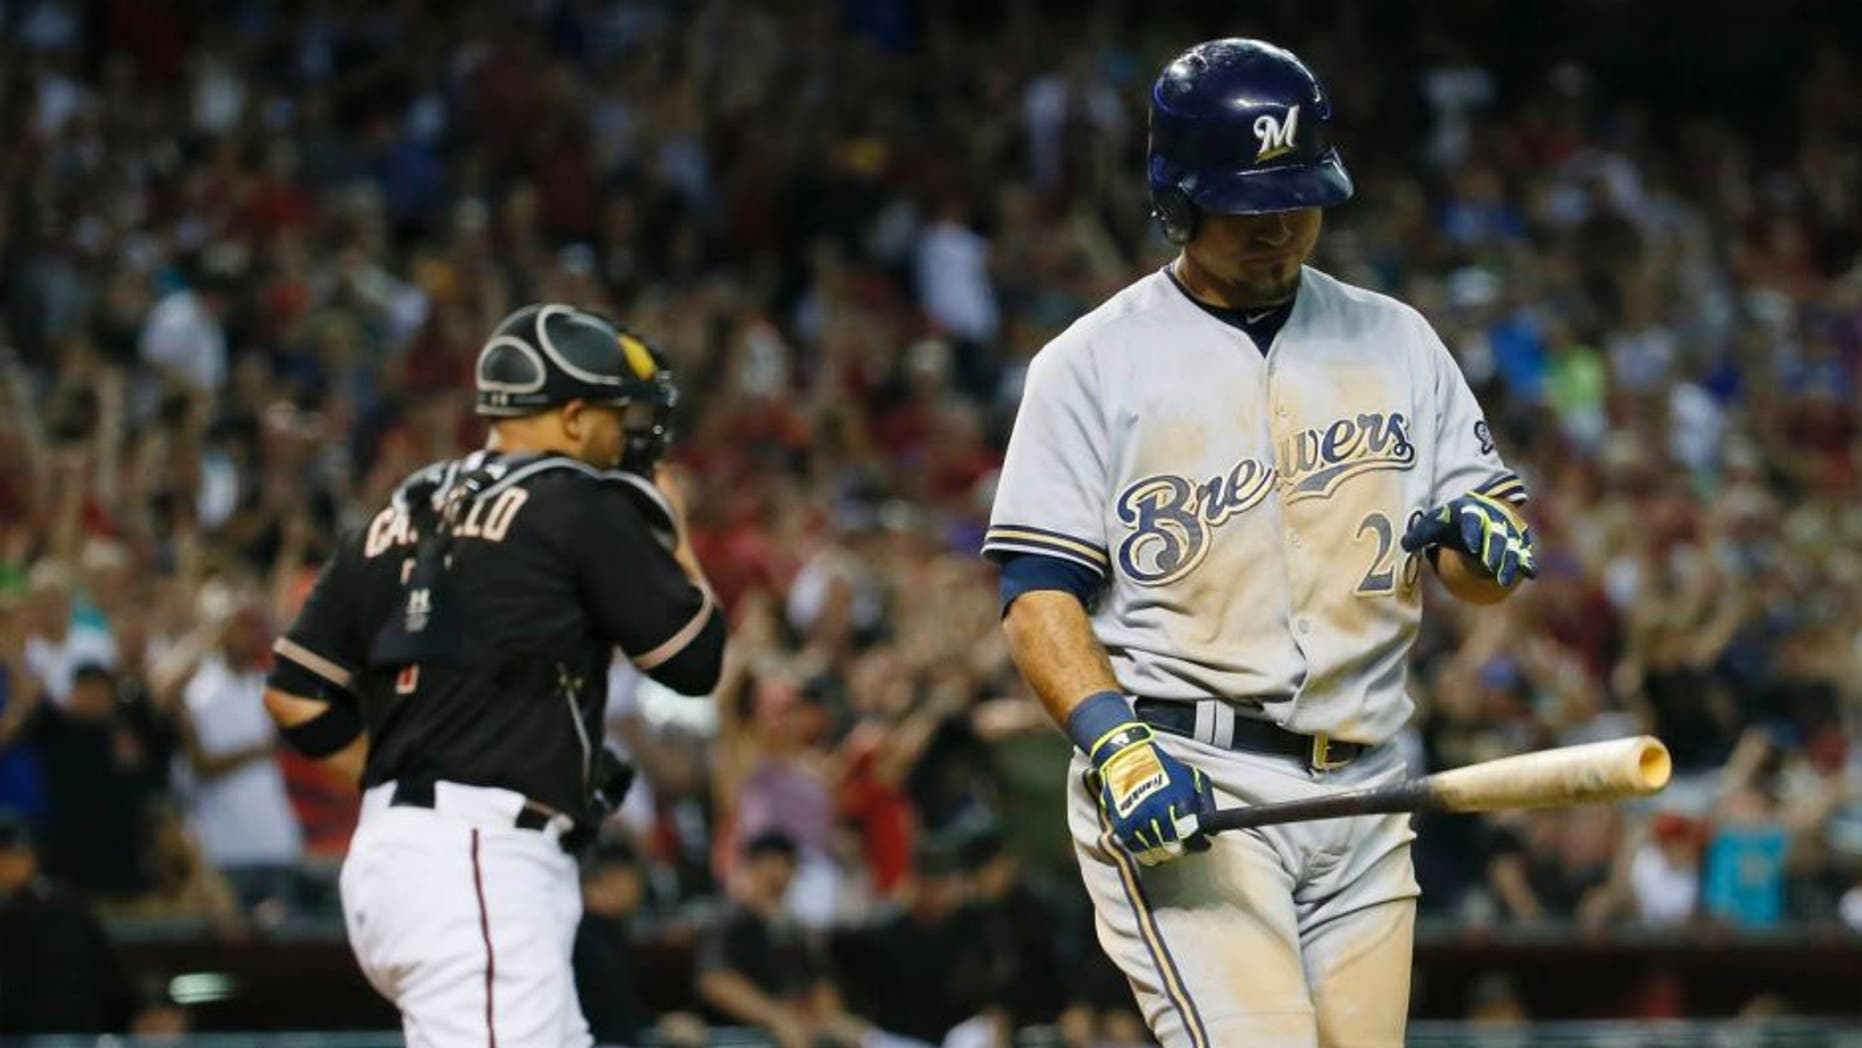 The Milwaukee Brewers' Gerardo Parra walks to the dugout after striking out with the bases loaded to end the game as Arizona Diamondbacks catcher Welington Castillo runs to the mound, Saturday, July 25, 2015, in Phoenix. The Diamondbacks won 2-0.